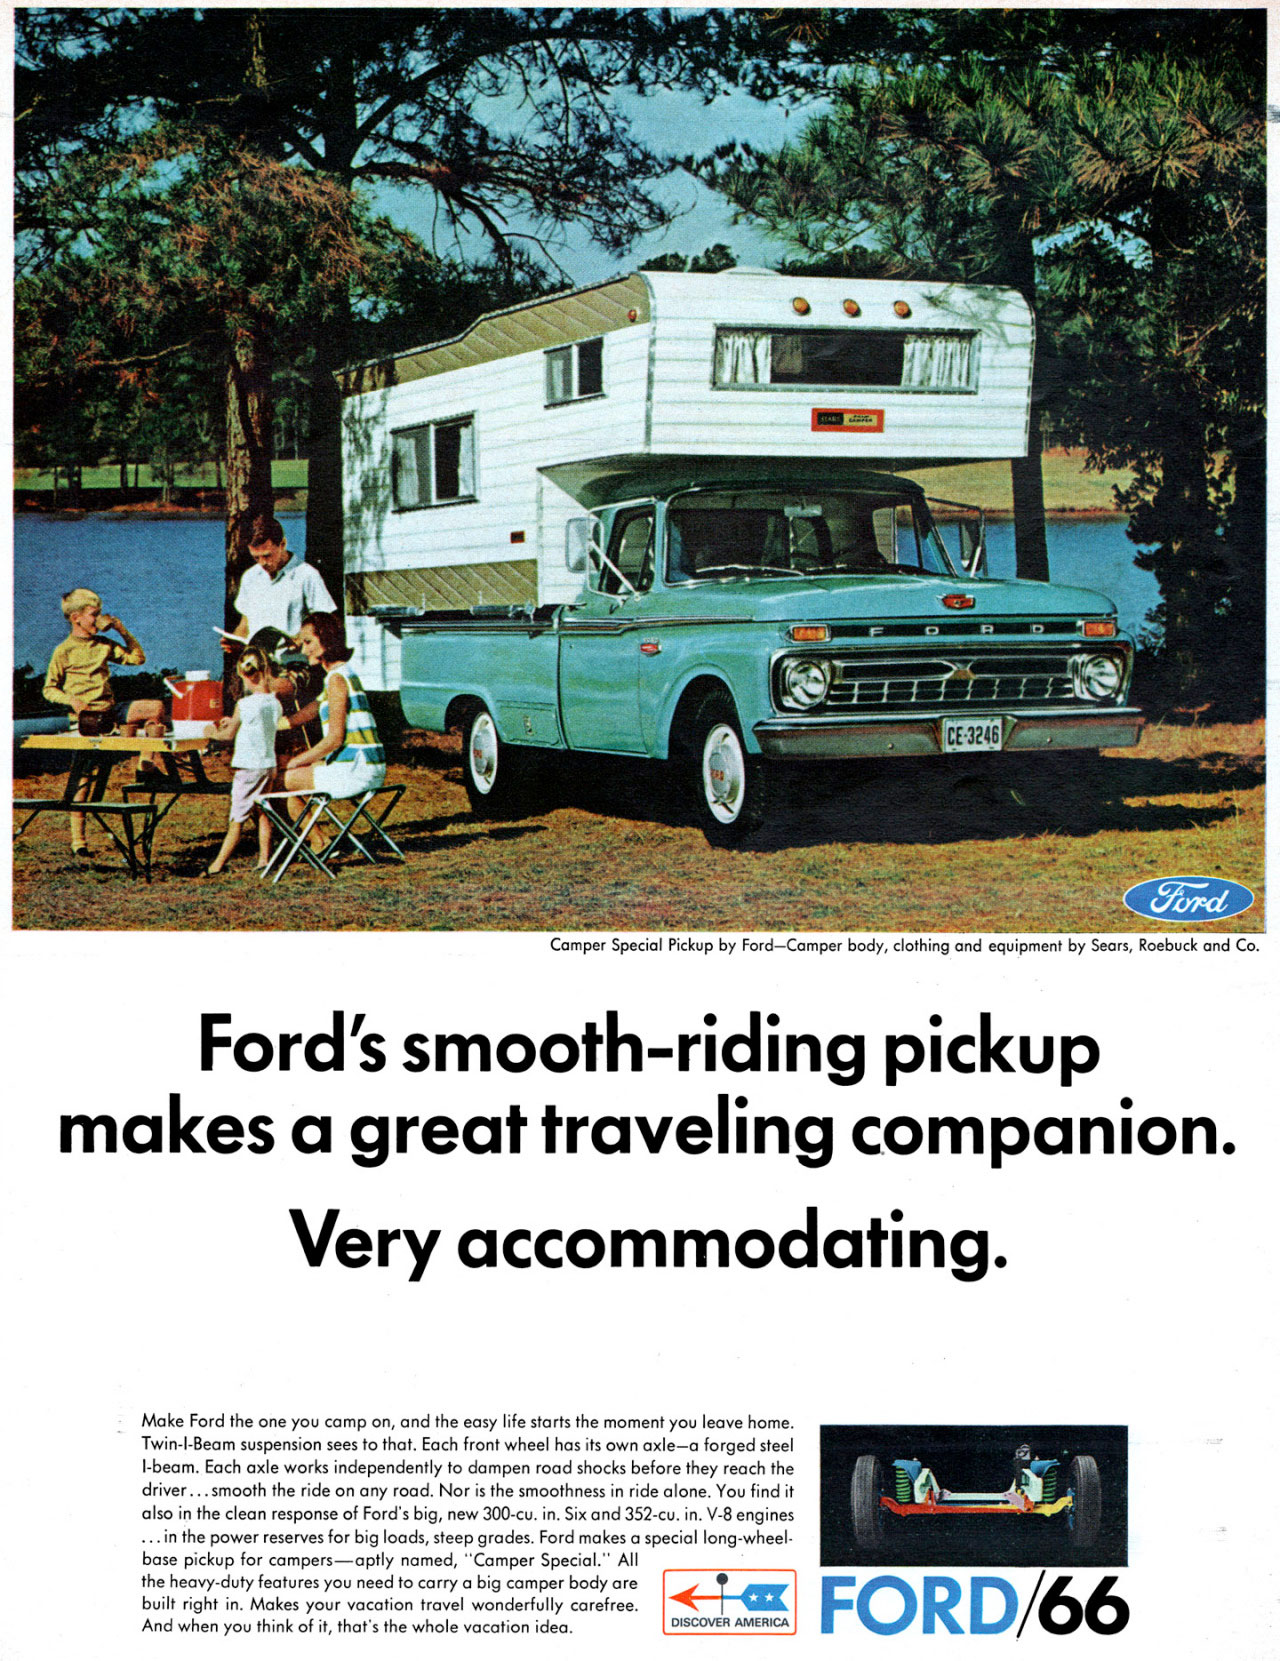 Camper Special Pickup by Ford—Camper body, clothing and equipment by Sears, Roebuck and Co.  Ford's smooth-riding pickup makes a great traveling companion. Very accommodating.  Make Ford the one you camp on, and the easy life starts the moment you leave home. Twin-I-Beam suspension sees to that. Each front wheel has its on axle—a forged steel I-beam. Each axle works independently to dampen road shocks before they reach the driver... smooth the ride on any road. Nor is the smoothness in ride alone. You find it also in the clean response of Ford's big, new 300-cu. in. Six and 352-cu. in. V-8 engines ... in the power reserves for big loads, steep grades. Ford makes a special long-wheel-base pickup for campers—aptly named, ''Camper Special.'' All the heavy-duty features you need to carry a big camper body are built right in. Makes your vacation travel wonderfully carefree. And when you think of it, that's the whole vacation idea.  4-4-az  DISCOVER AMERICA   FORD/66